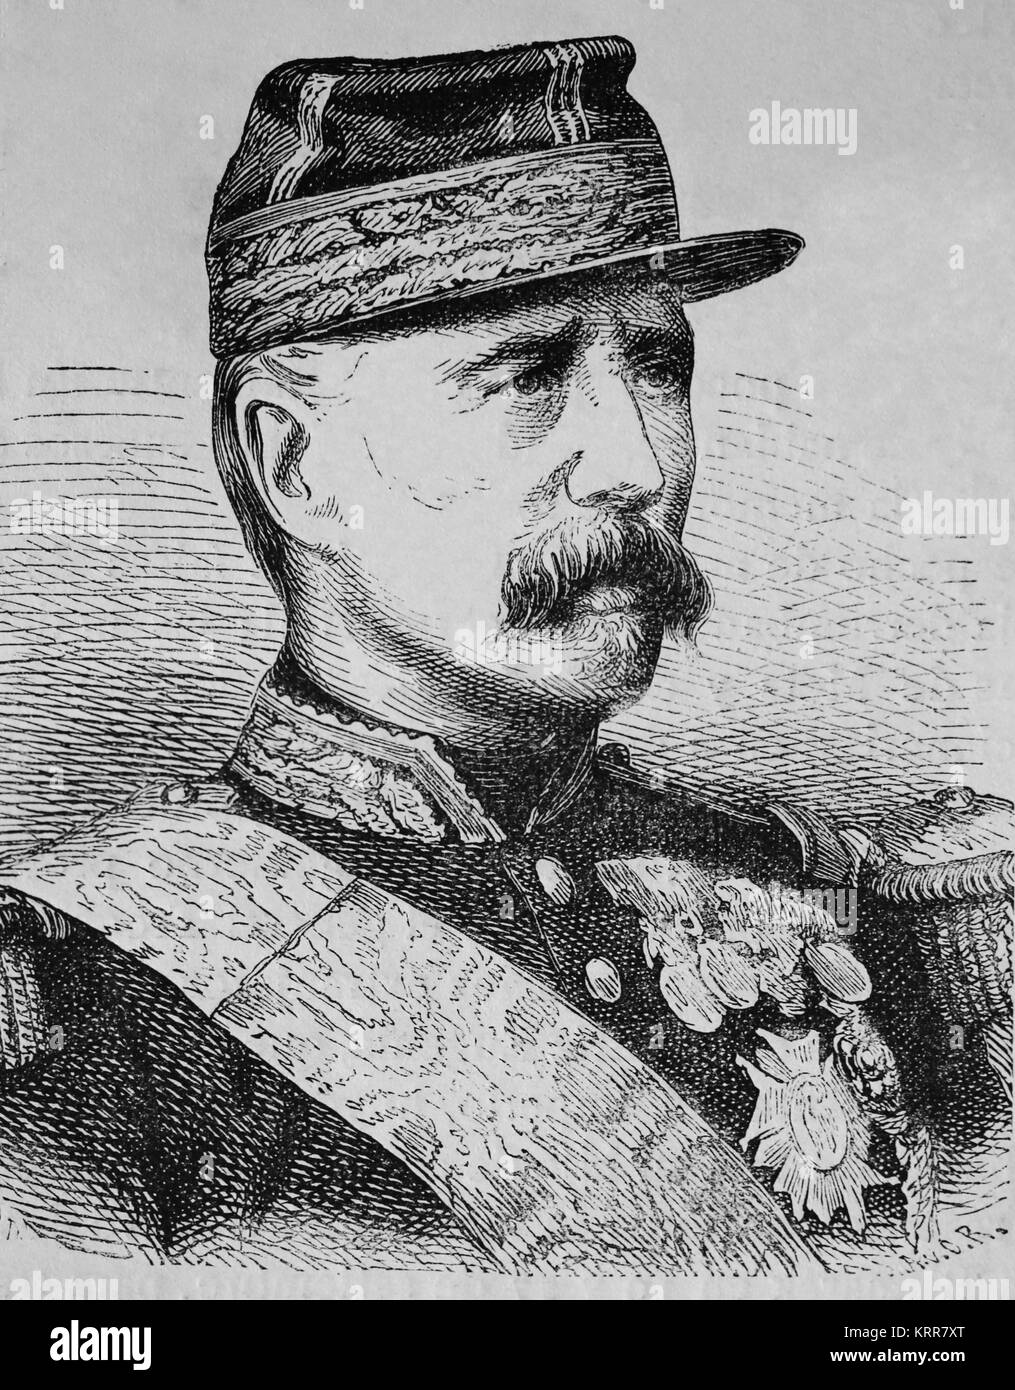 Patrice de MacMahon, Duke of Magenta (1808-1893). French general and politician. Engraving, 1883. - Stock Image